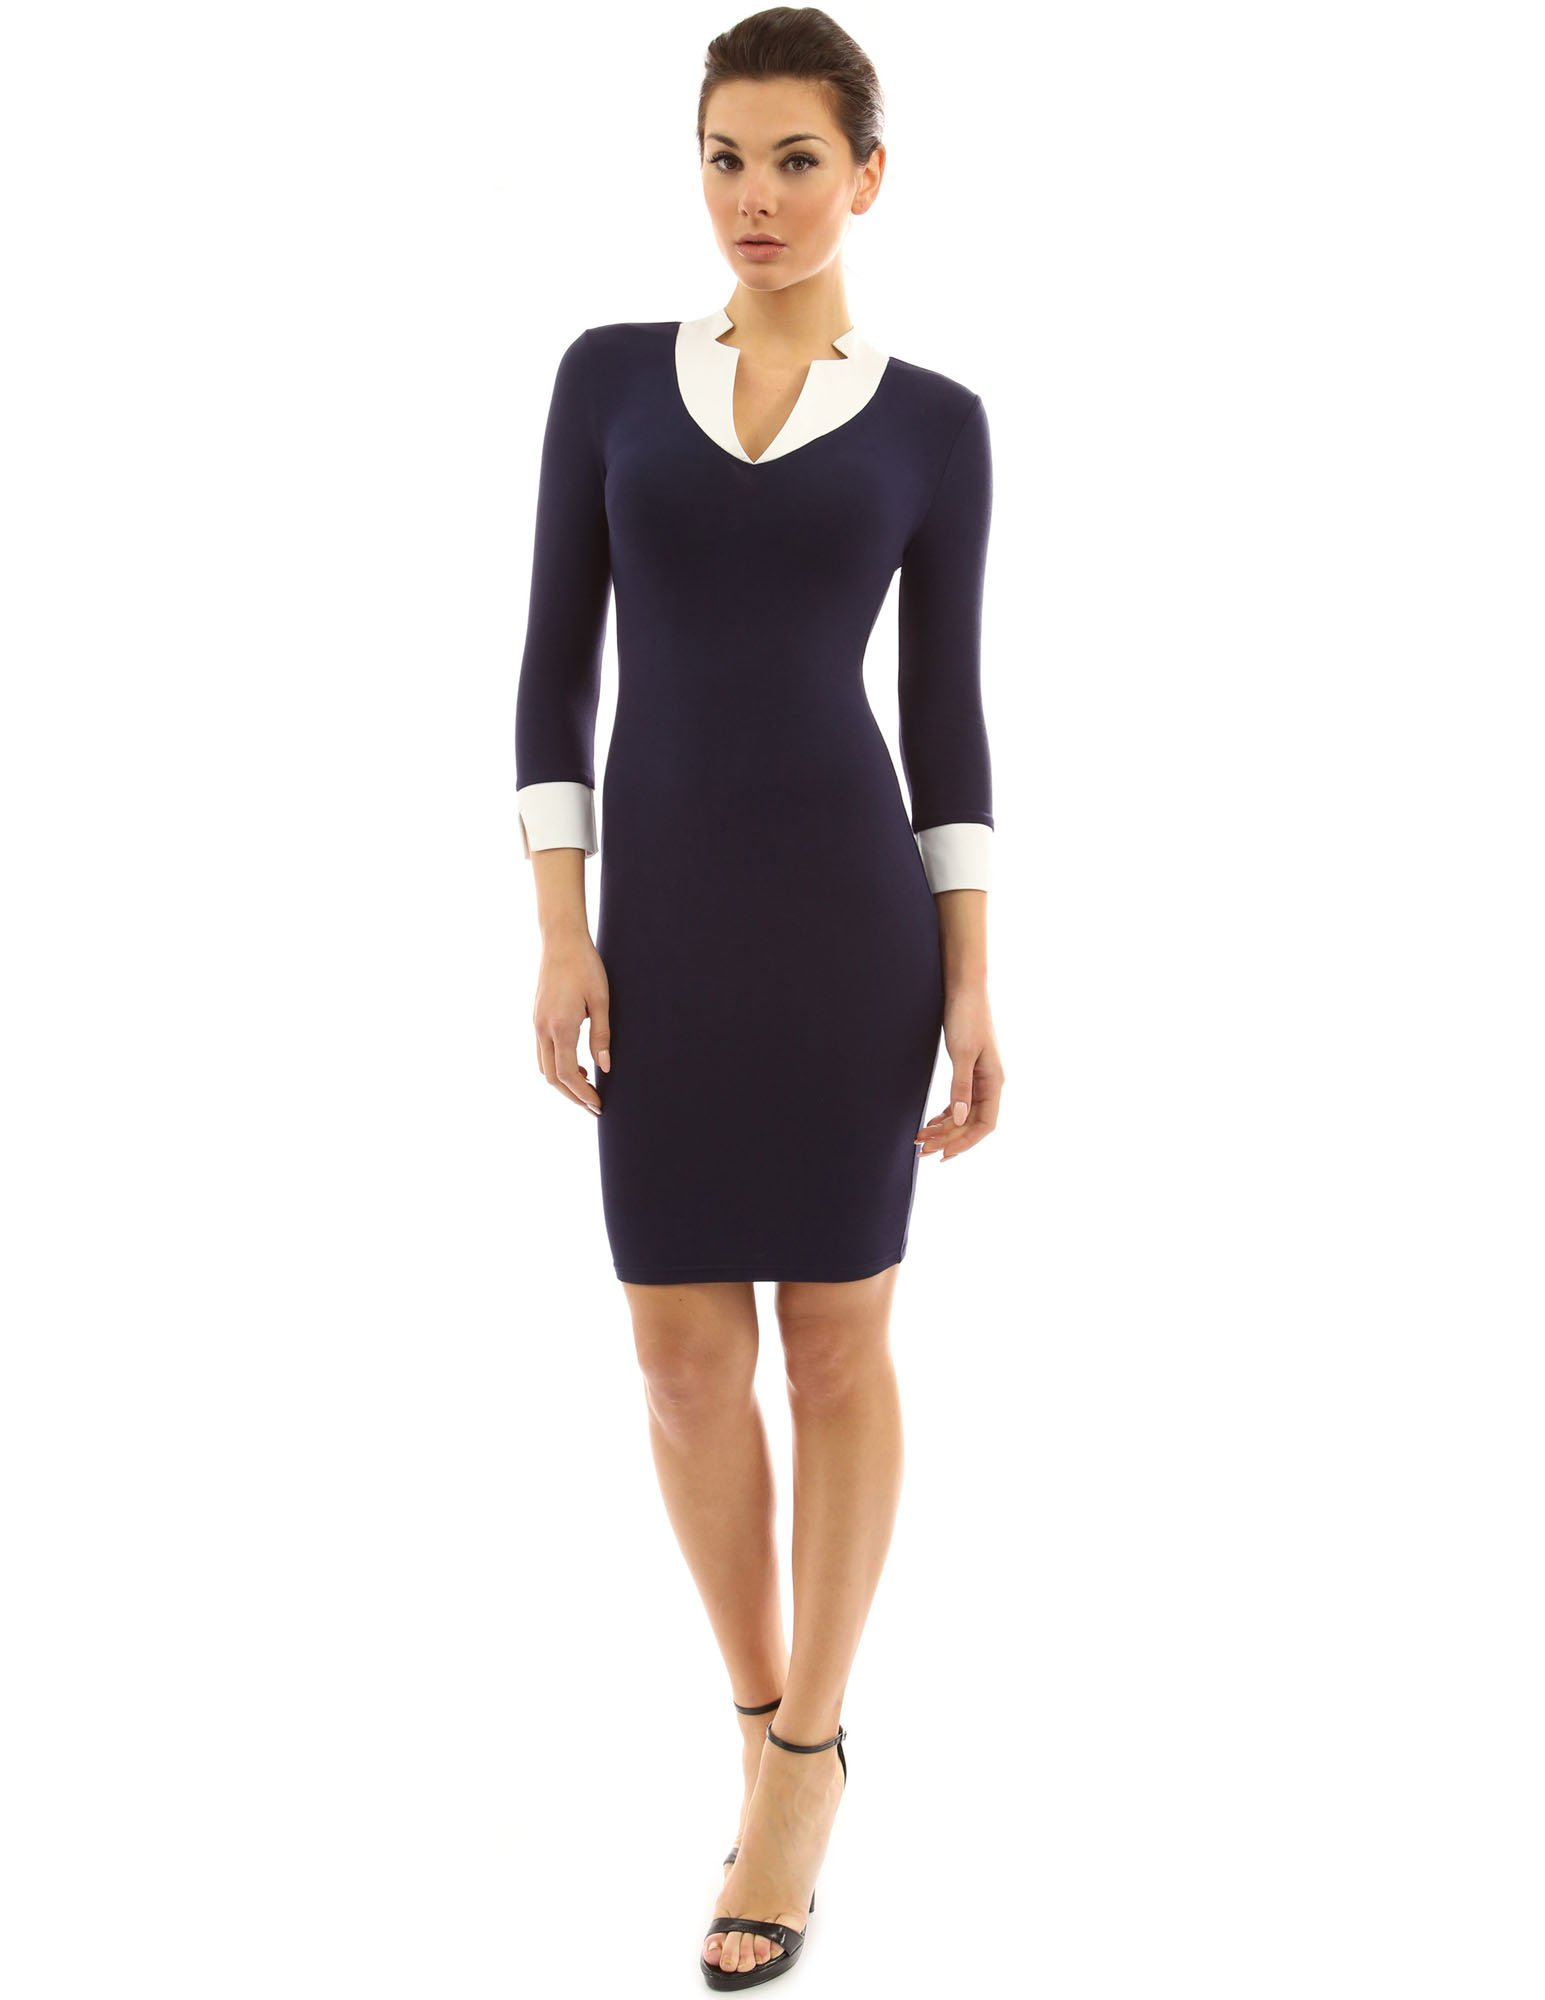 PattyBoutik Women's 2 in 1 Style Inset Stretch Dress (Navy Blue S) by PattyBoutik